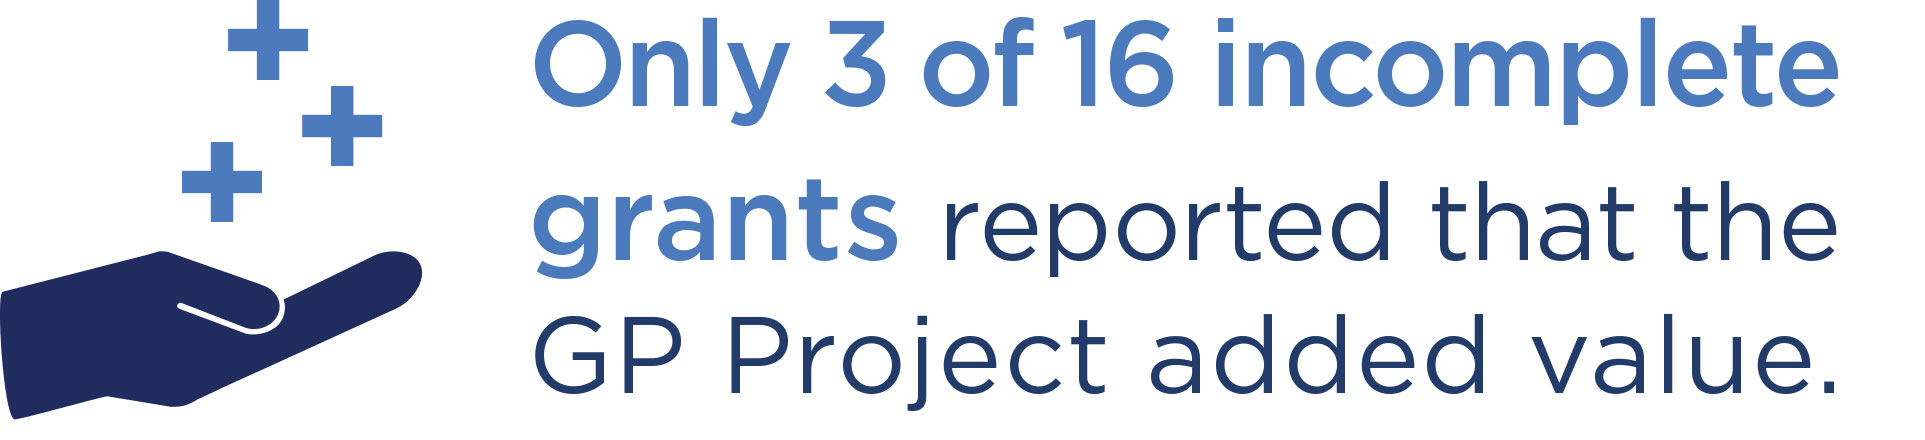 Only 3 of 16 incomplete grants reported that the GP Project added value.